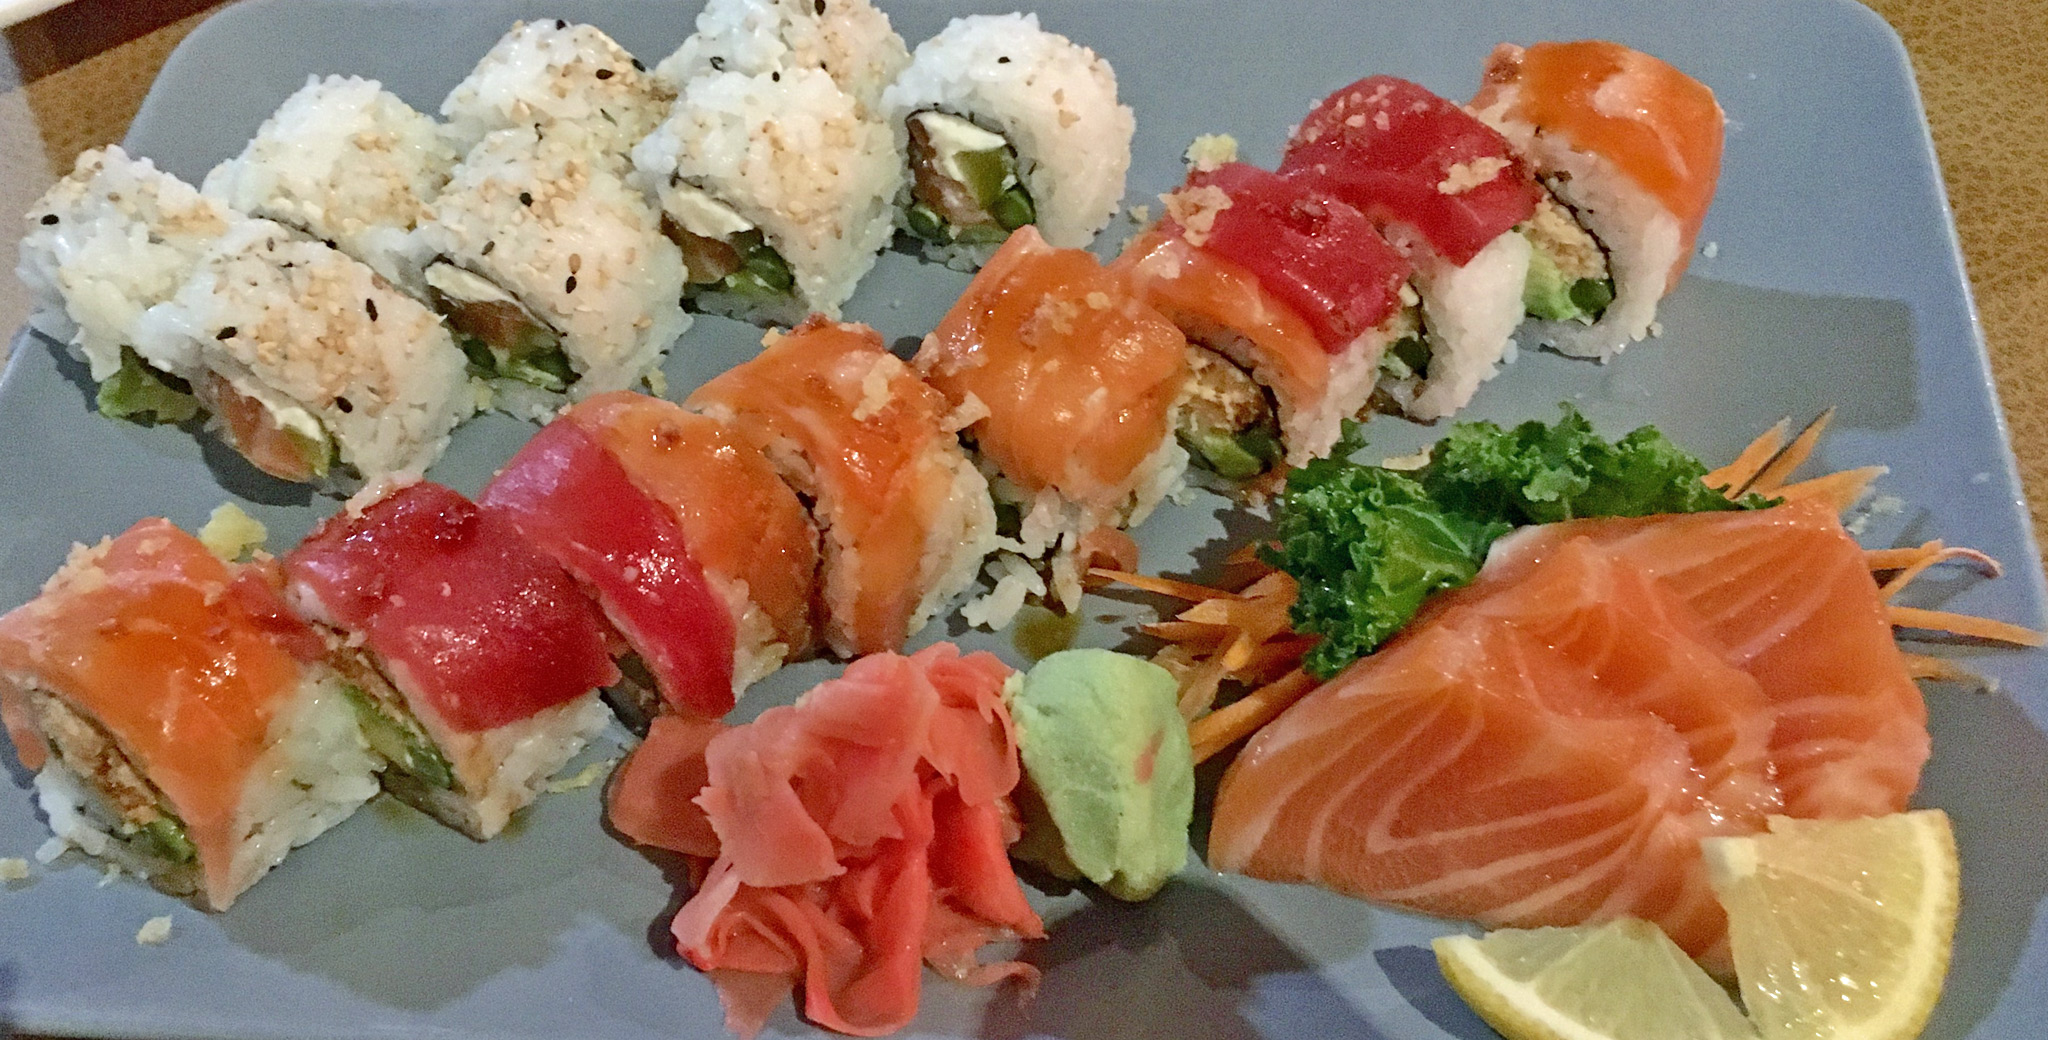 Top: THE DTSP - Salmon, pickle, cream cheese, avocado and asparagus. Middle: BOMB 'CHEL - Snow crab, avocado and asparagus roll topped with salmon, tuna, eel sauce, wasabi mayo and tempura chips. Bottom: Salmon Sashimi